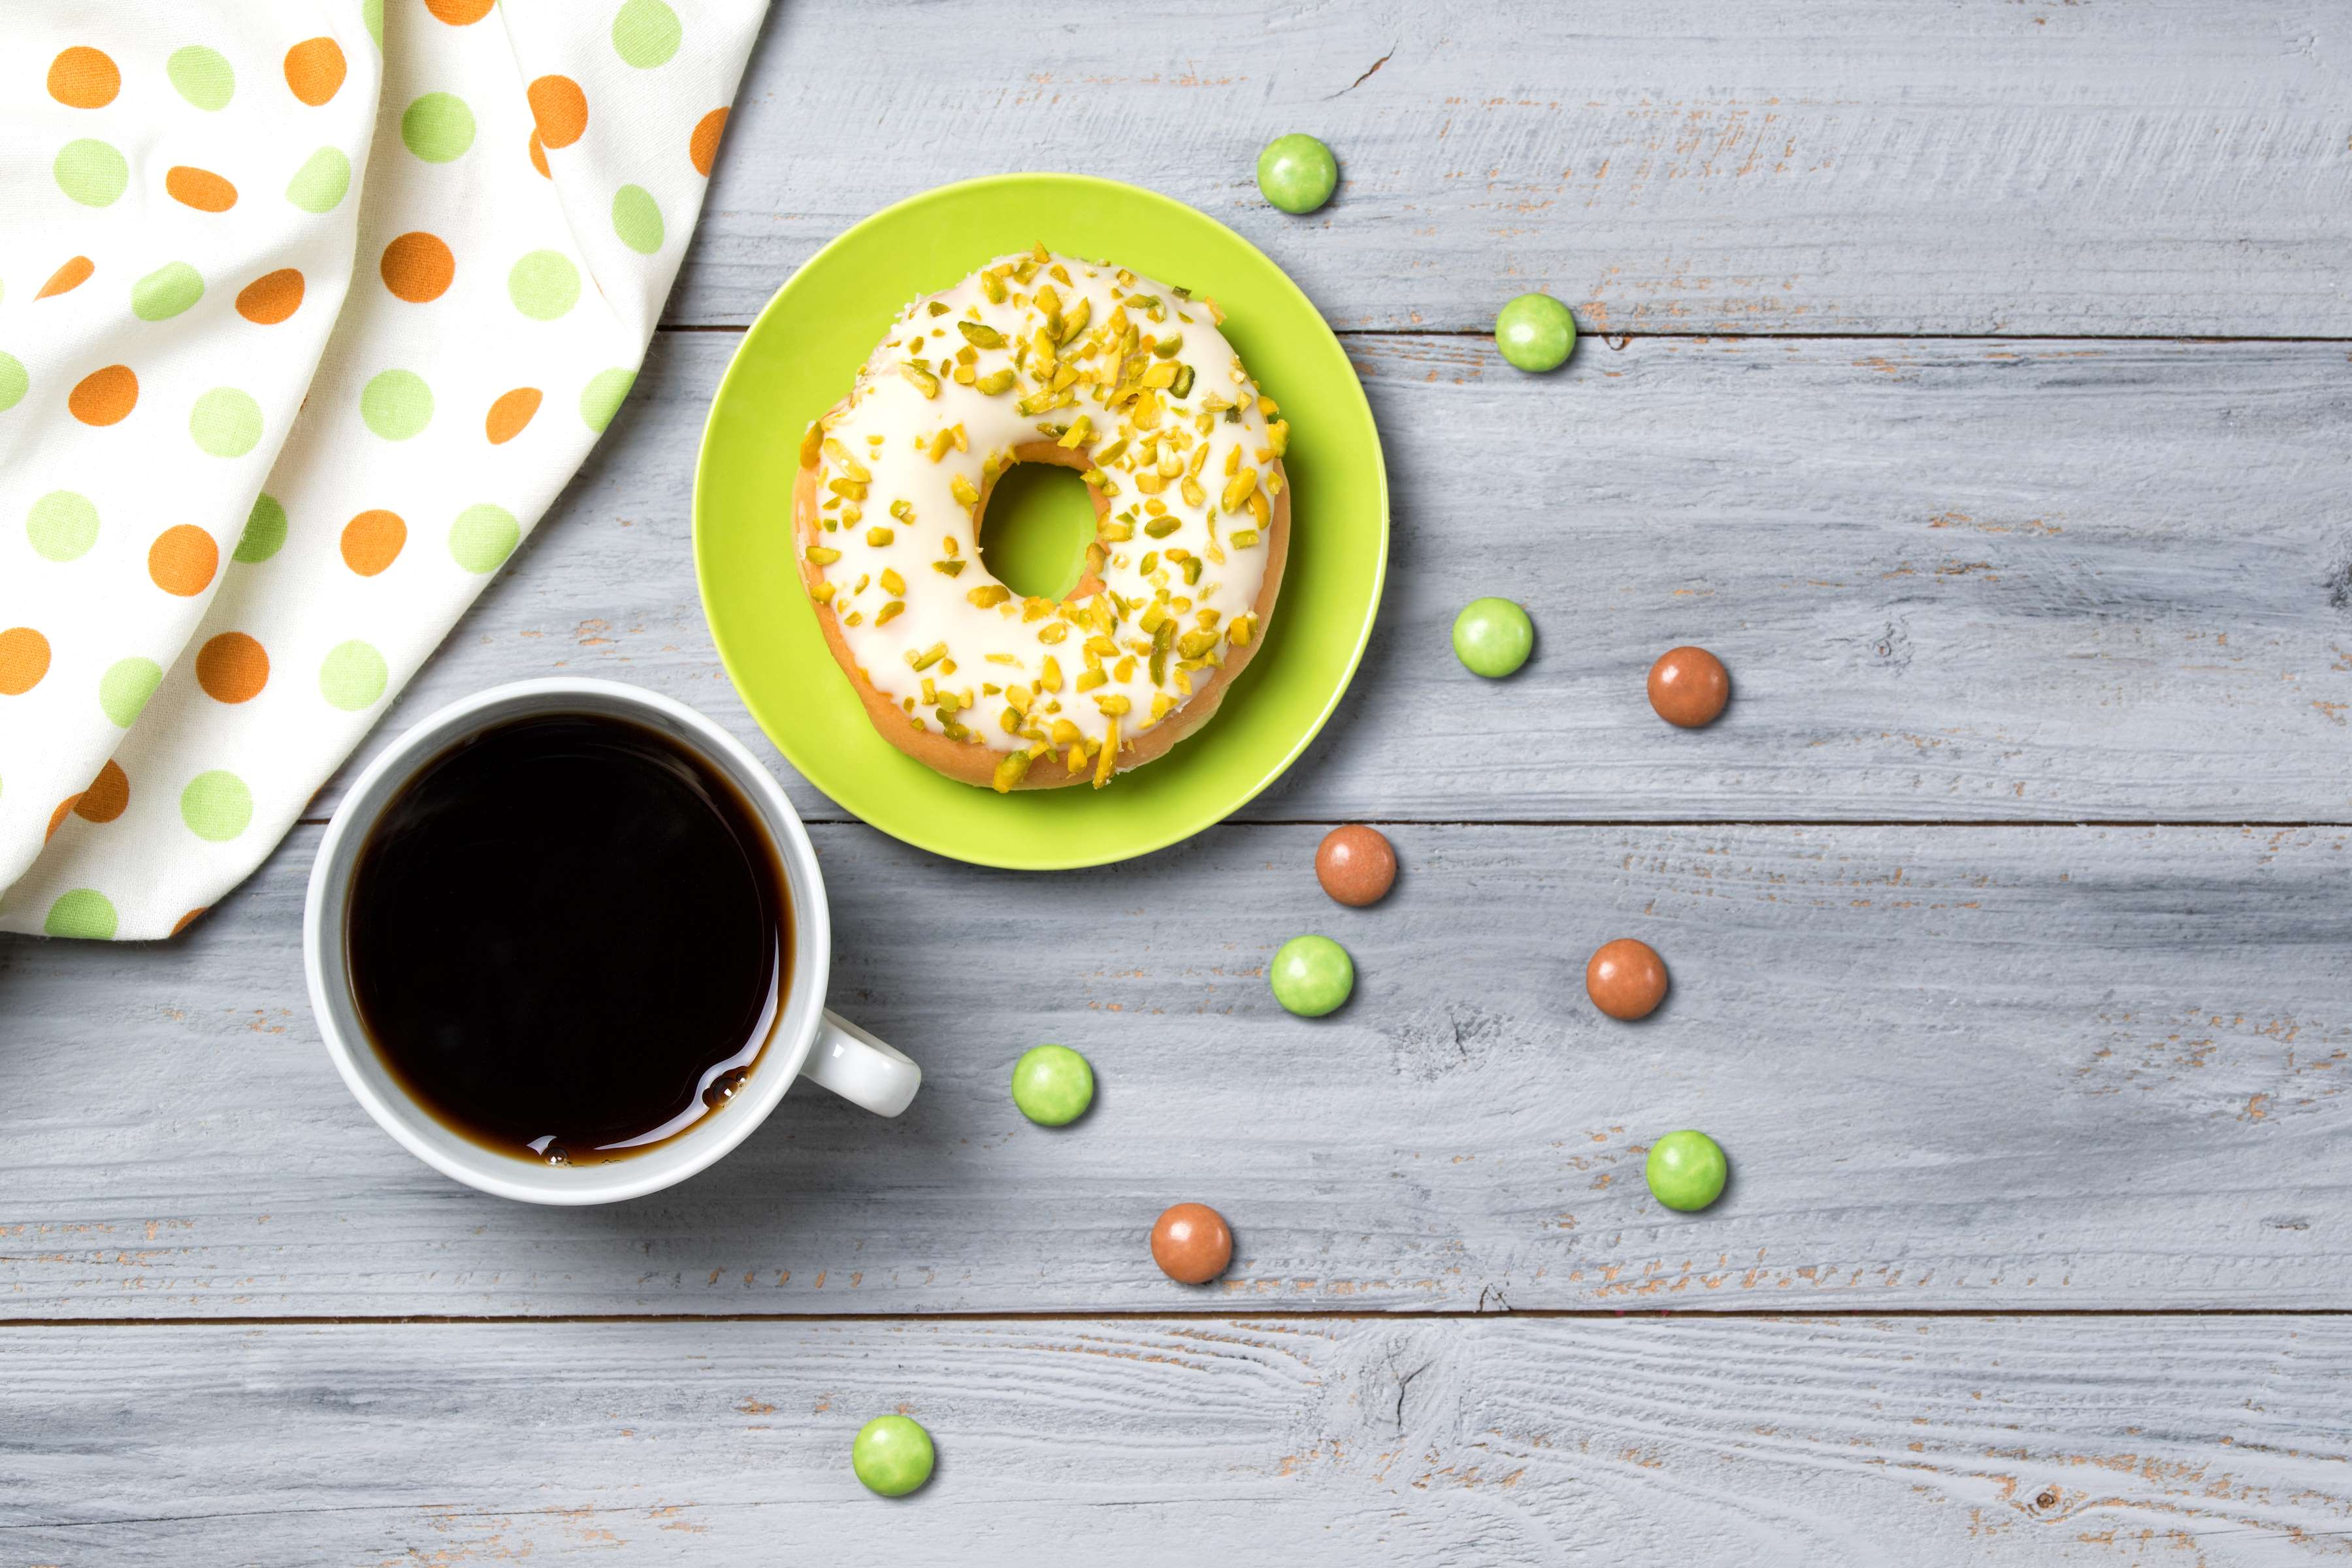 Baked Pistachio Donuts Recipe